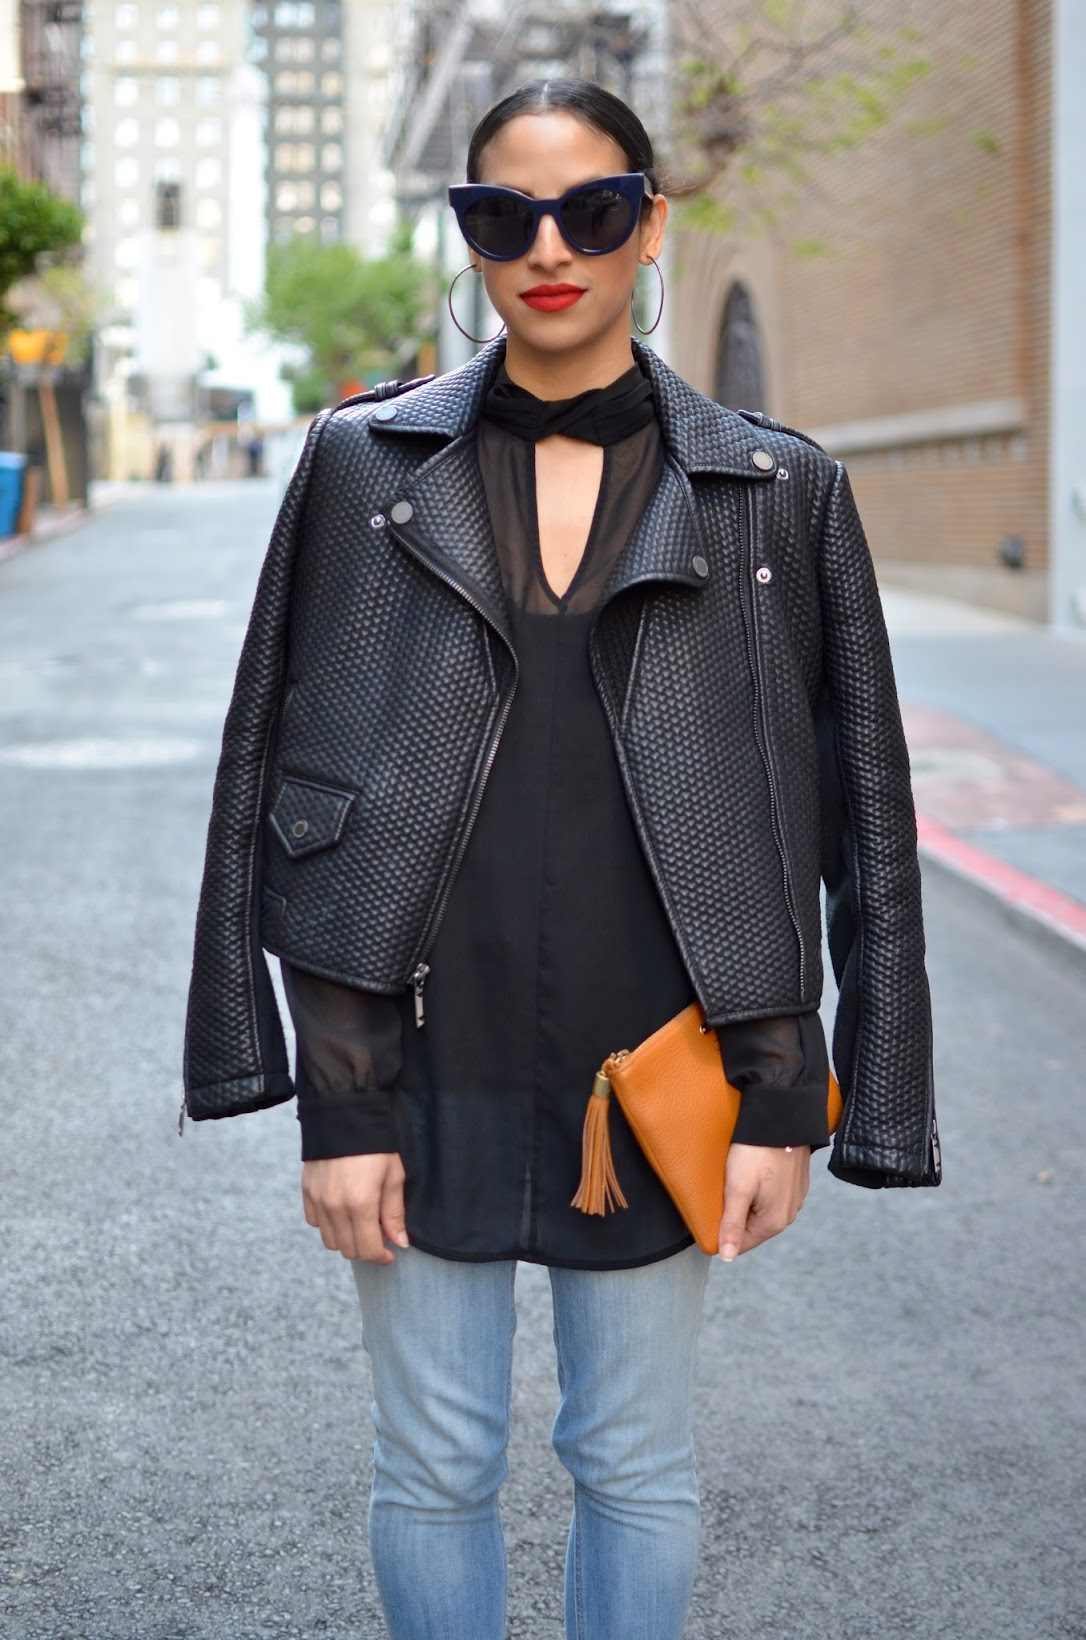 all black, OOTD,Gigi New York handbag, J. Crew denim, BCBG moto leather jacket, Stila Beso lipstick, SF streetstyle, streetstyle, Zara strappy sandals